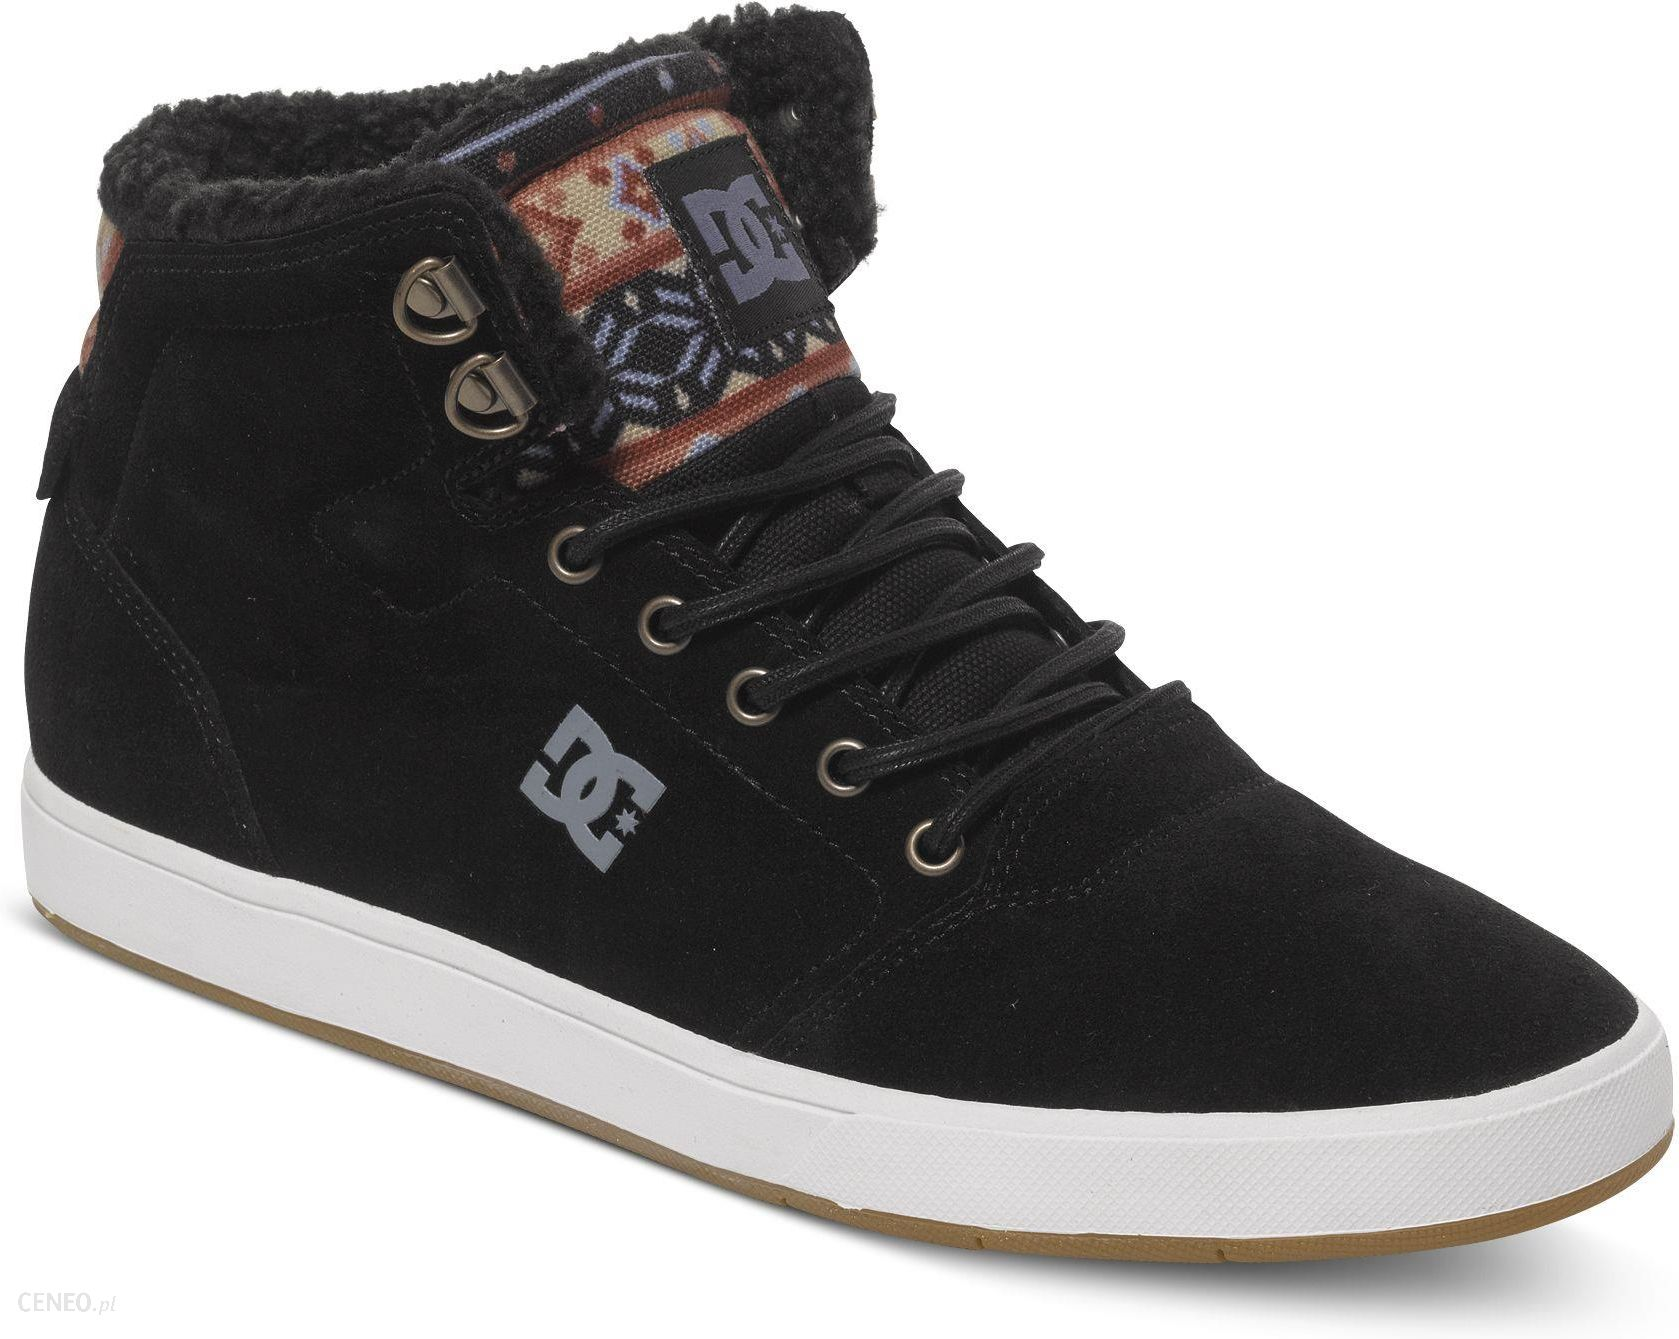 cecbade8822fd DC buty Crisis High Wnt M Shoe Kmi Black/Multi 10,5 (44) - Ceny i ...